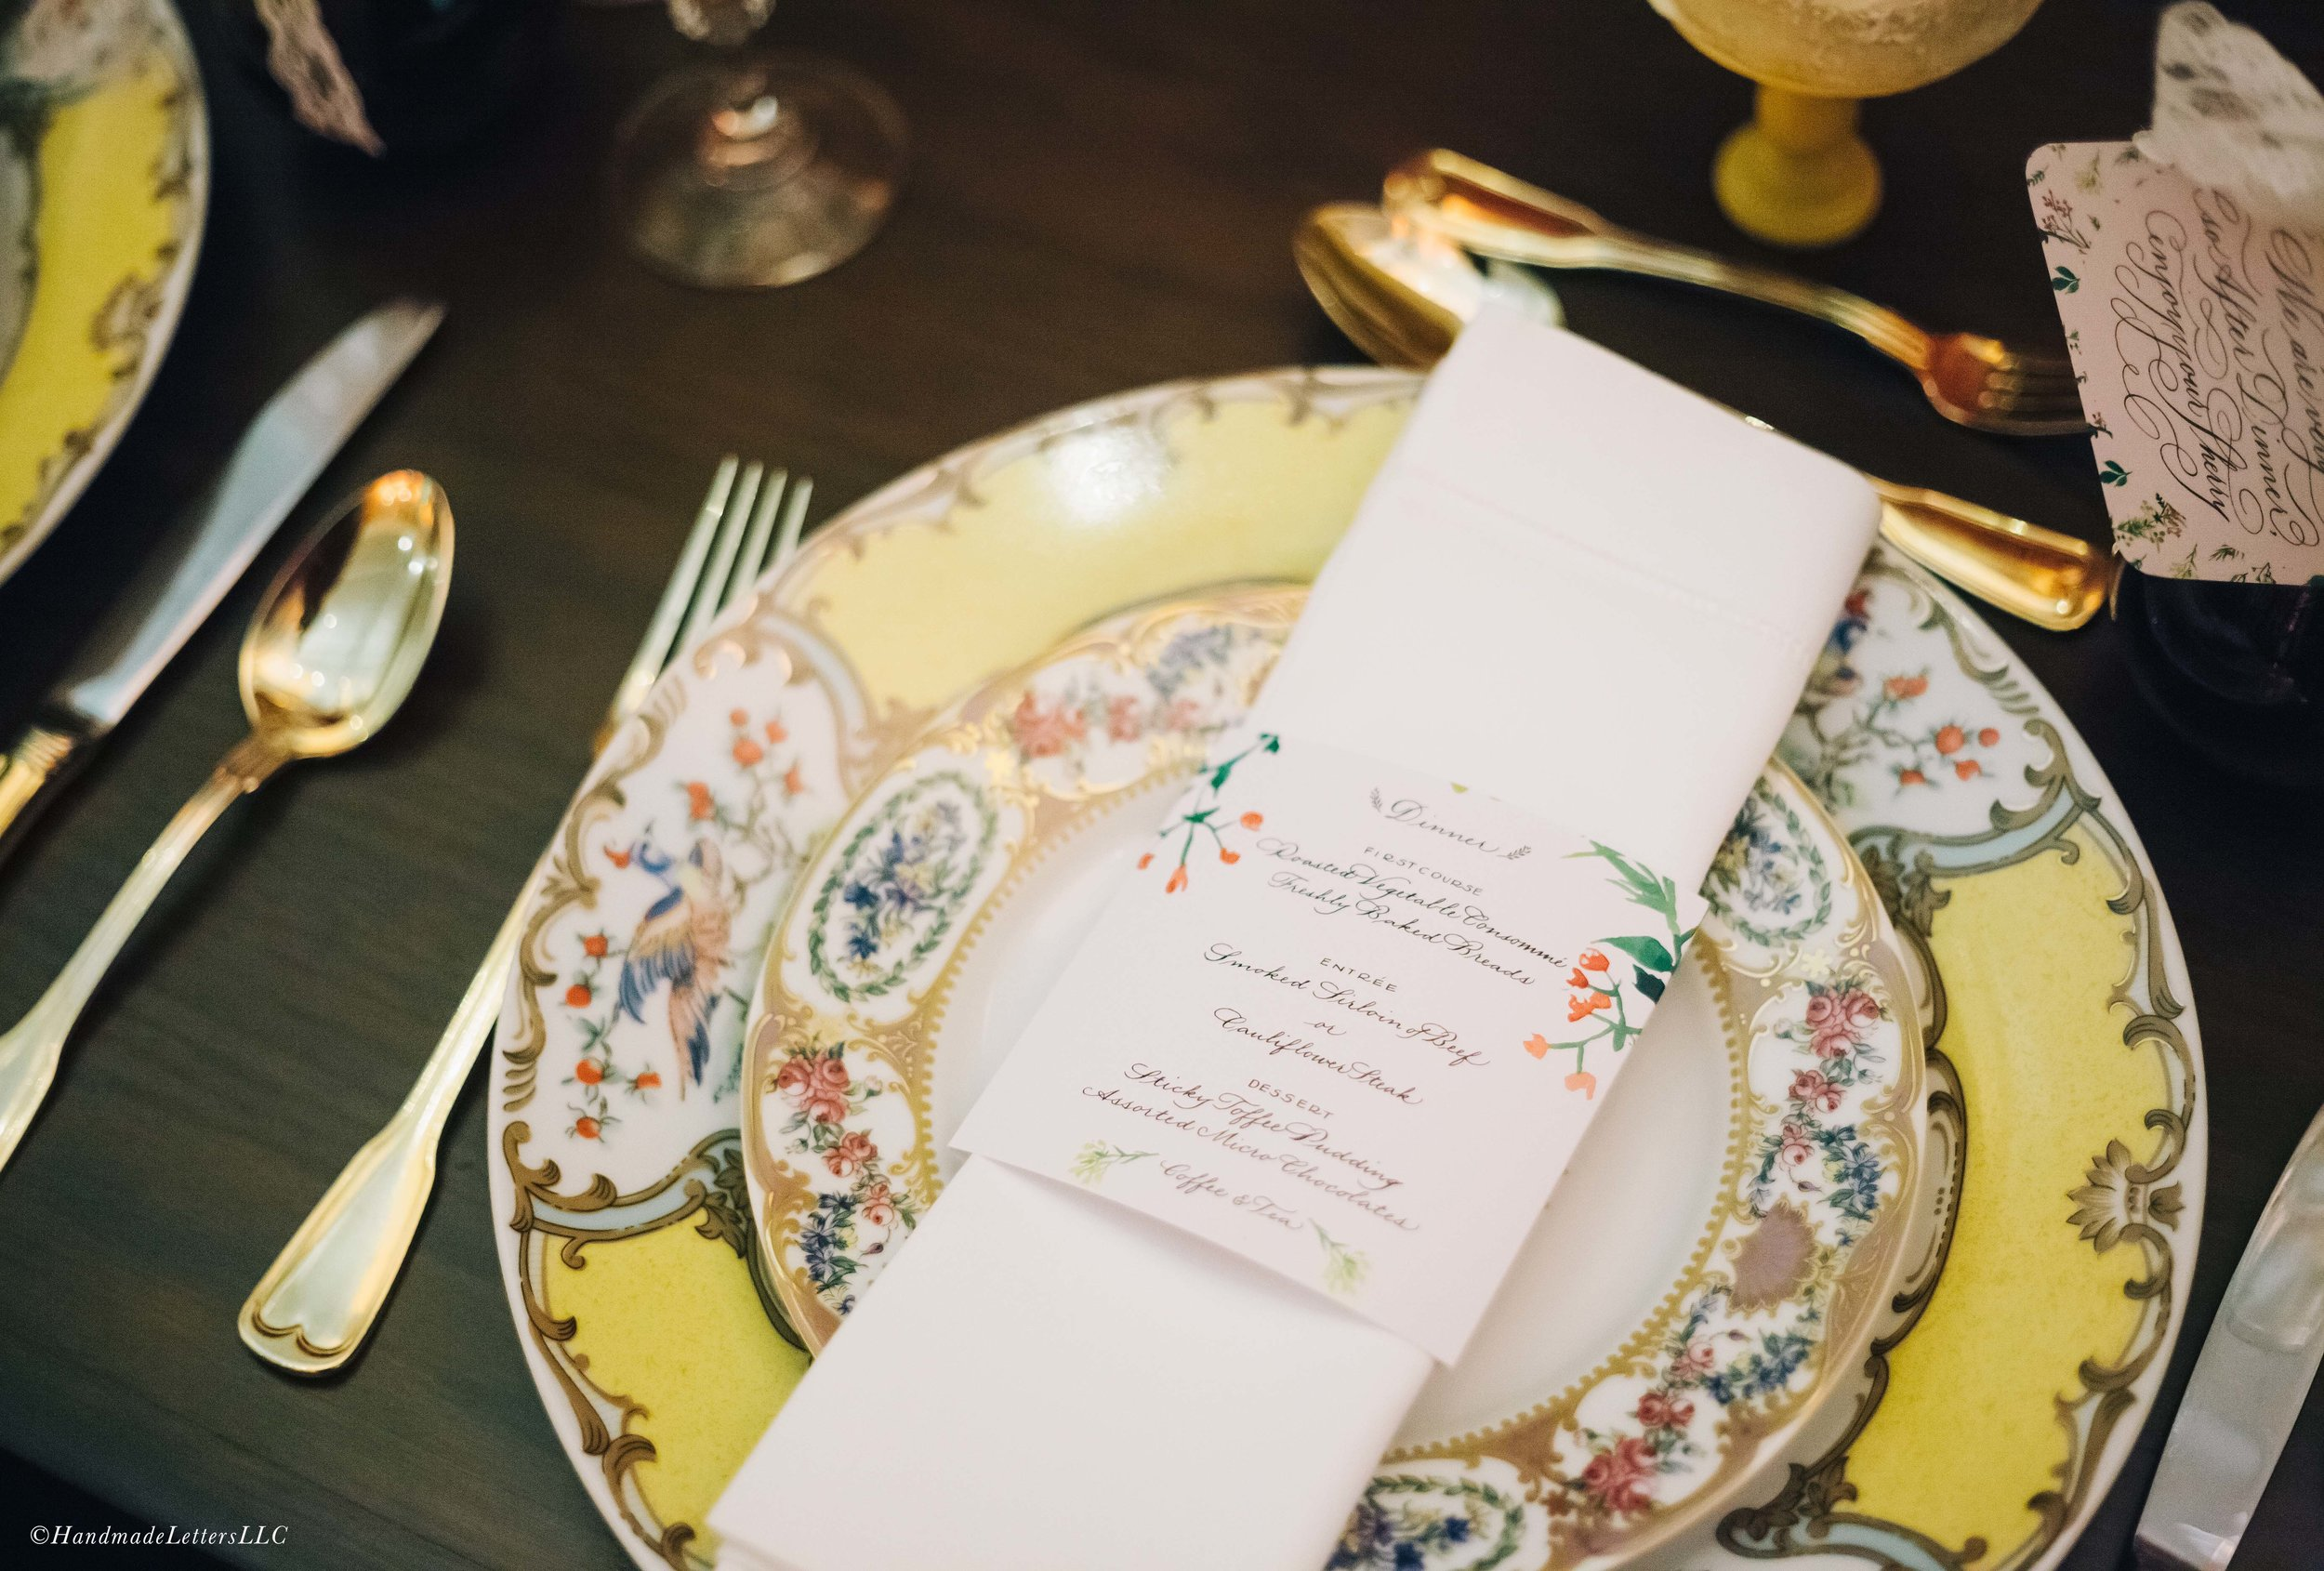 Handmade Letters - Calligraphed menu for Top Nosh DC presented by Taylor & Hov Events. Photo courtesy of Erika Layne.